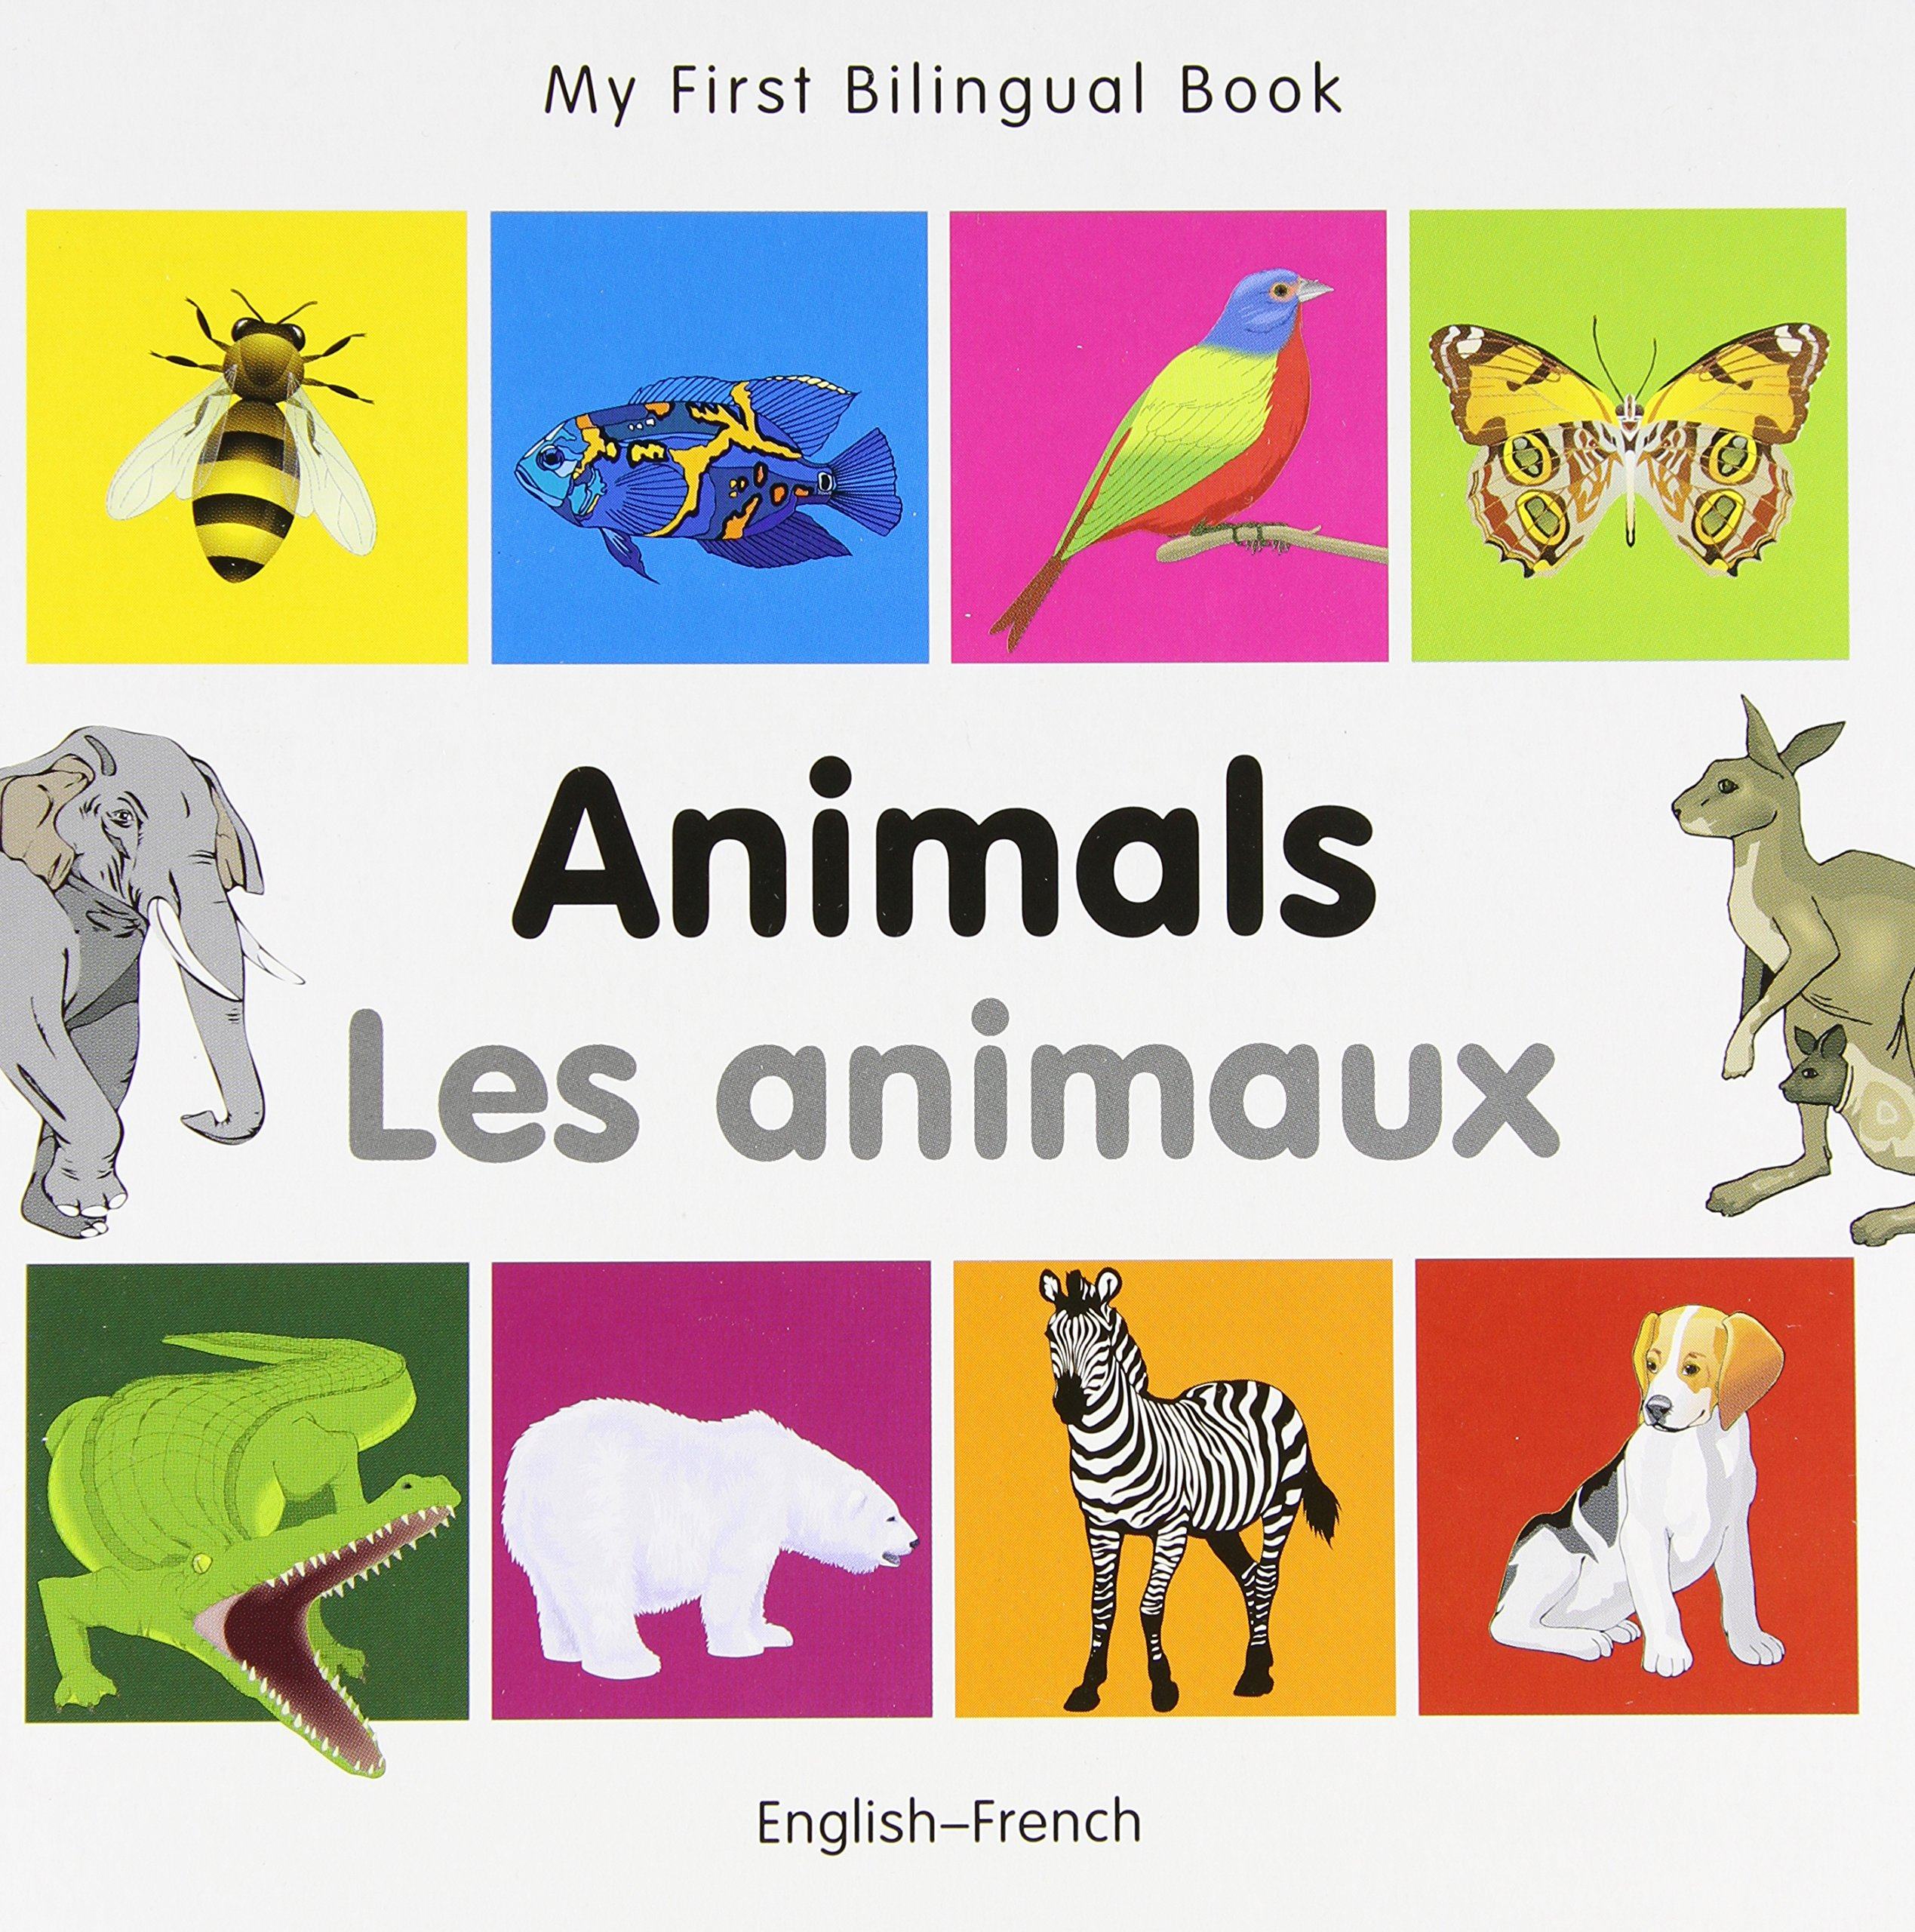 Bedroom english french dictionary wordreference com - My First Bilingual Book Animals English French French And English Edition Milet Publishing 9781840596120 Amazon Com Books